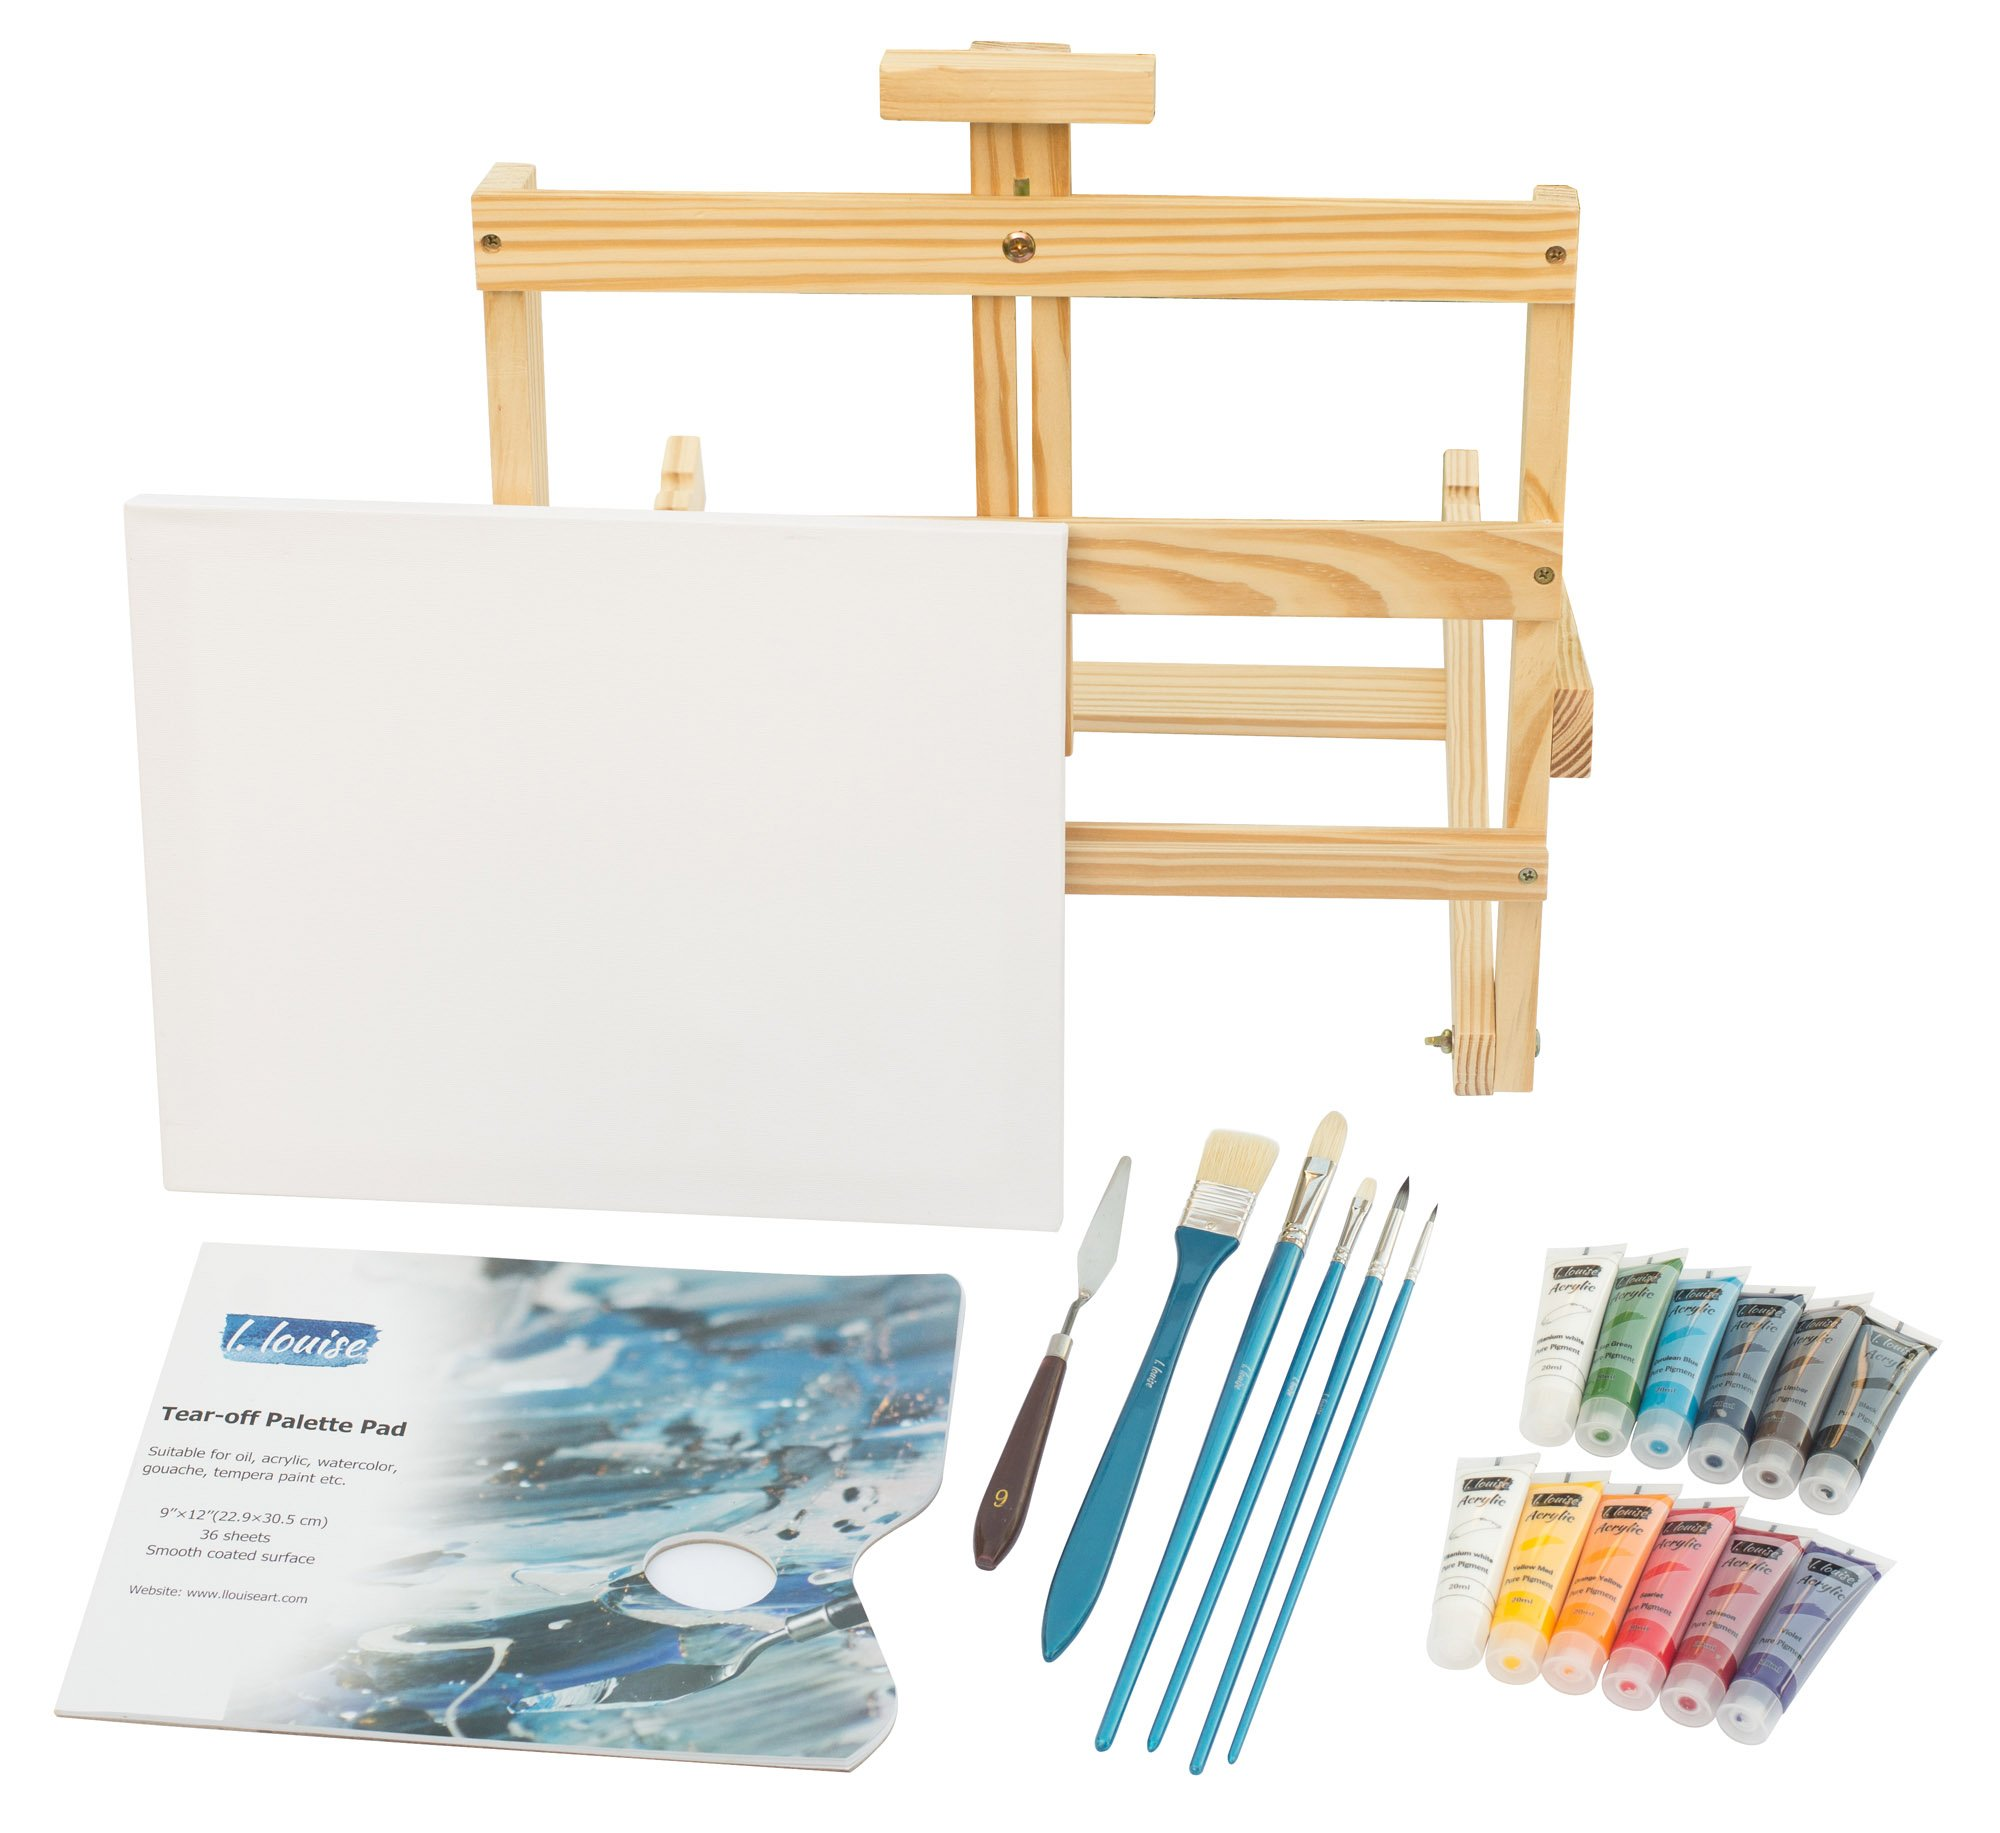 L.Louise Art Acrylic Paint Set with Easel, 5 Brushes, Palette Knife, 11'' X 14'' Stretched Canvas, Tear-Off Palette Pad, 12-20ml Tubes of Acrylic Paint. Includes Free Painting Lesson Video!